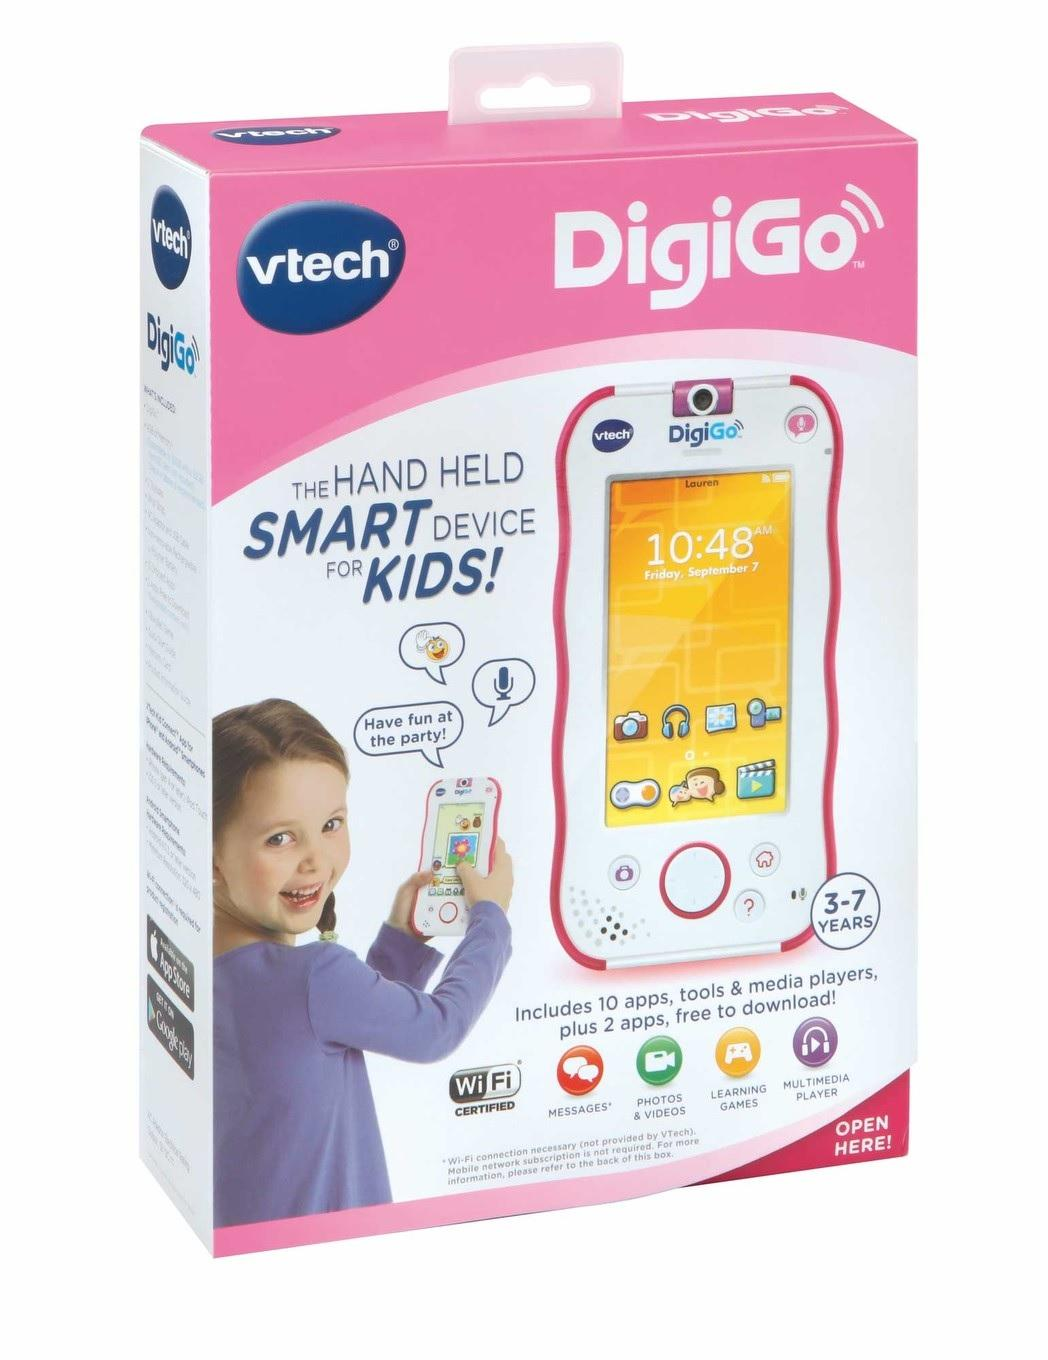 Vtech Digigo Hand Held Smart Device For Kids By Cashconverters.